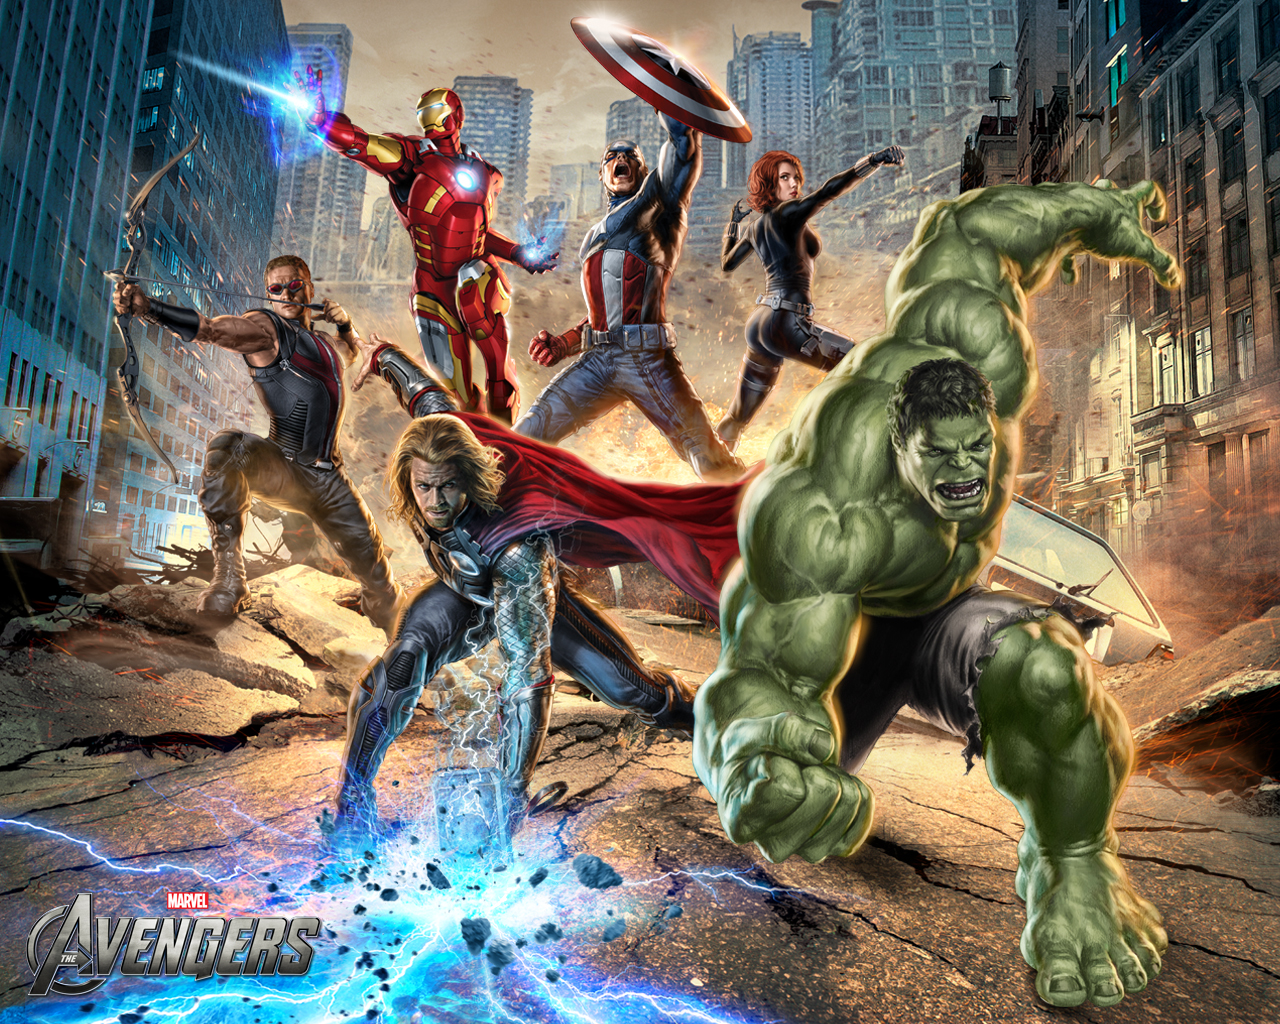 Wallpapers de Coleccion de The Avengers (Los Vengadores)